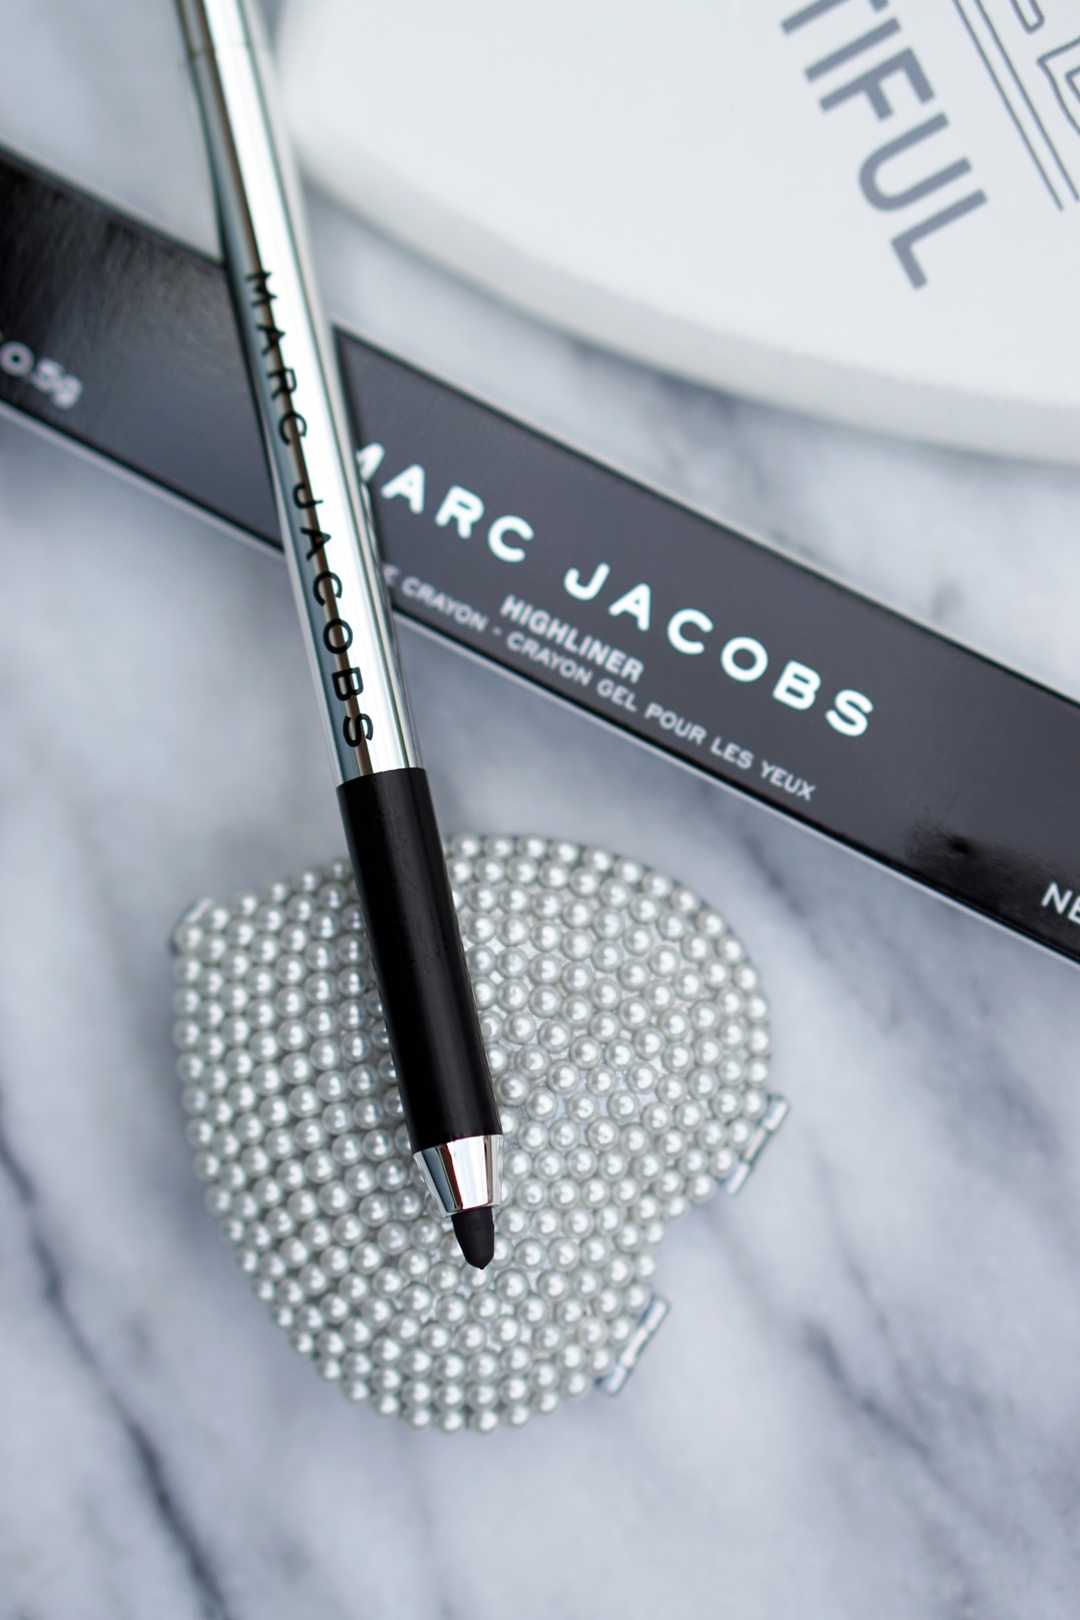 Marc Jacobs Highliner Gel Eye Crayon Eyeliner Blacquer